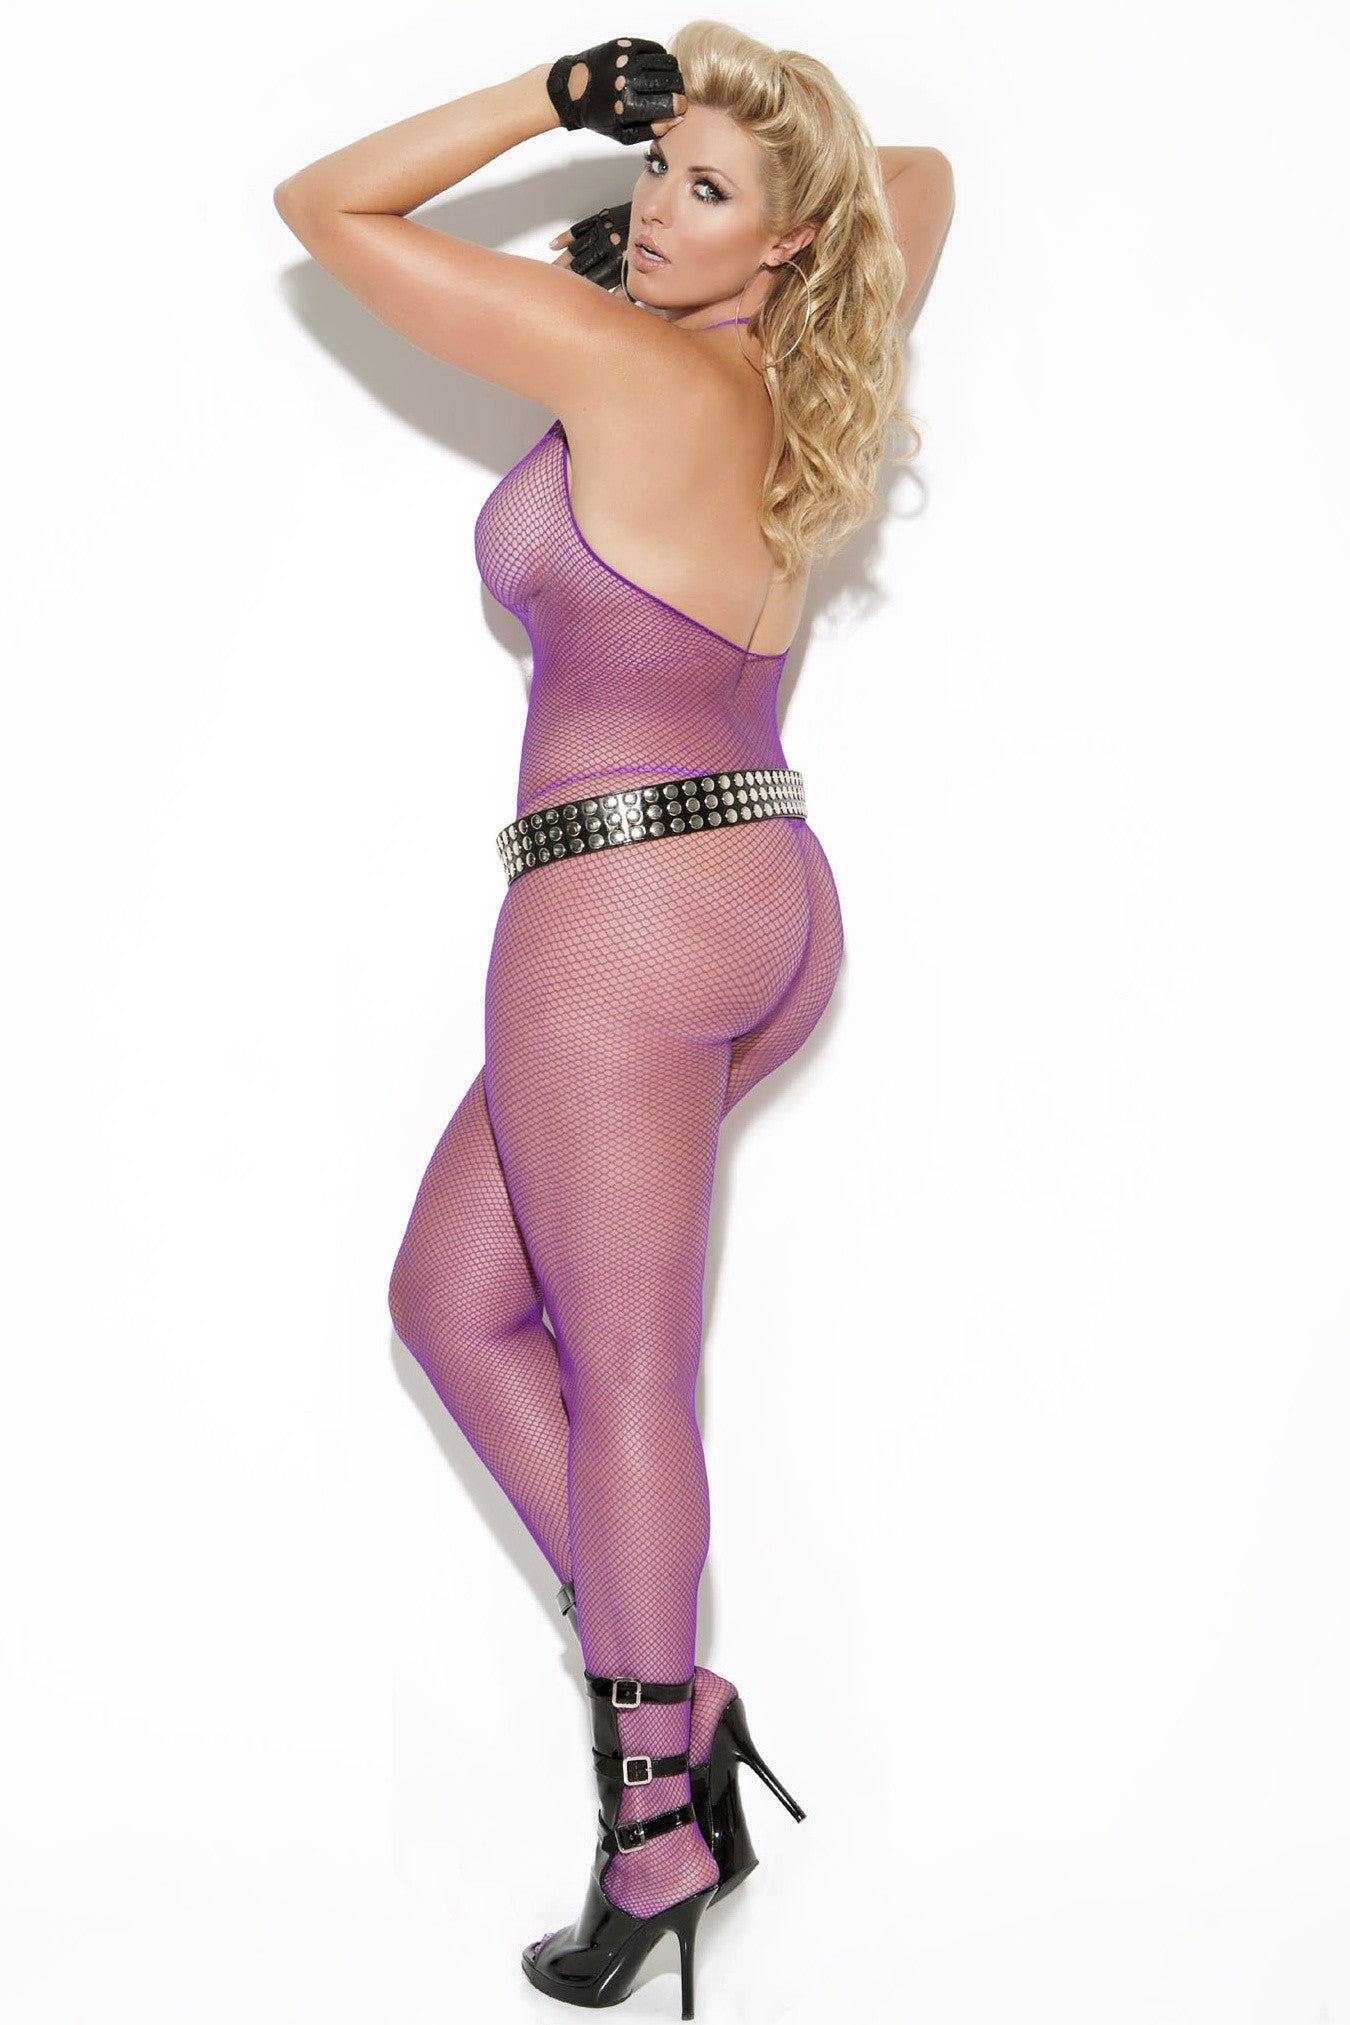 EM-8634 Purple bodystocking - Sexylingerieland  - 2